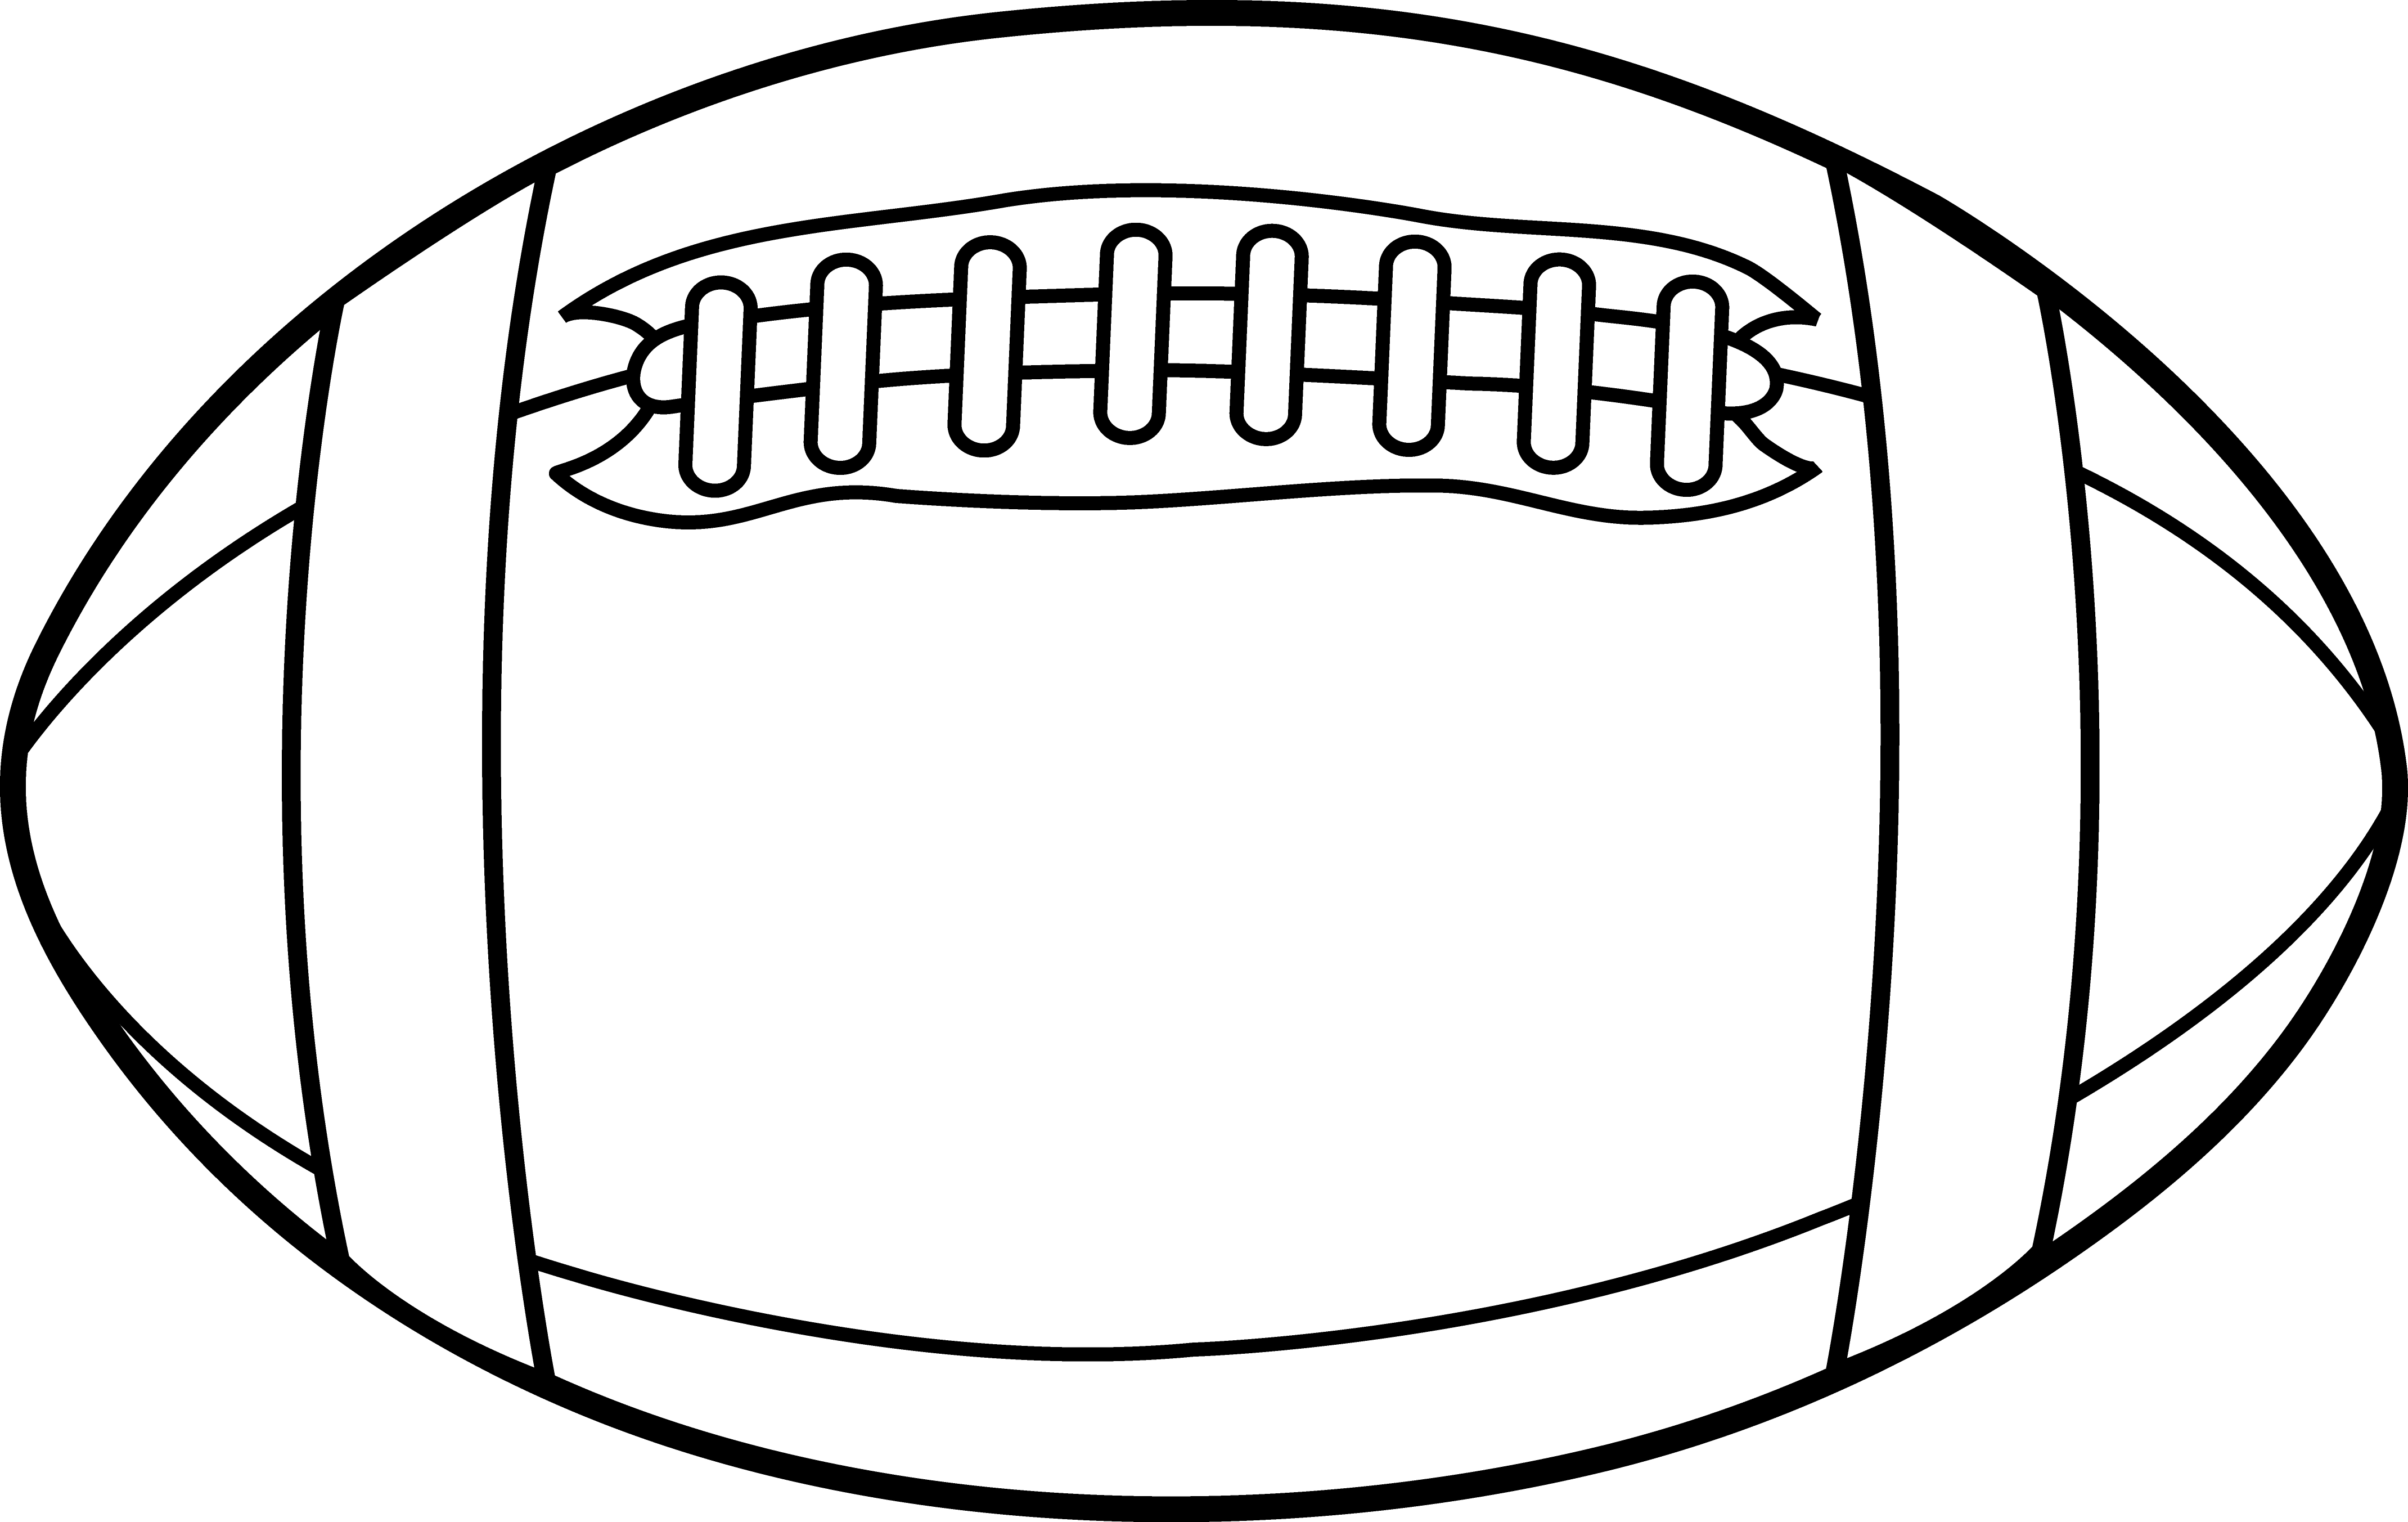 Football Field Clipart Black And White Clipart Panda